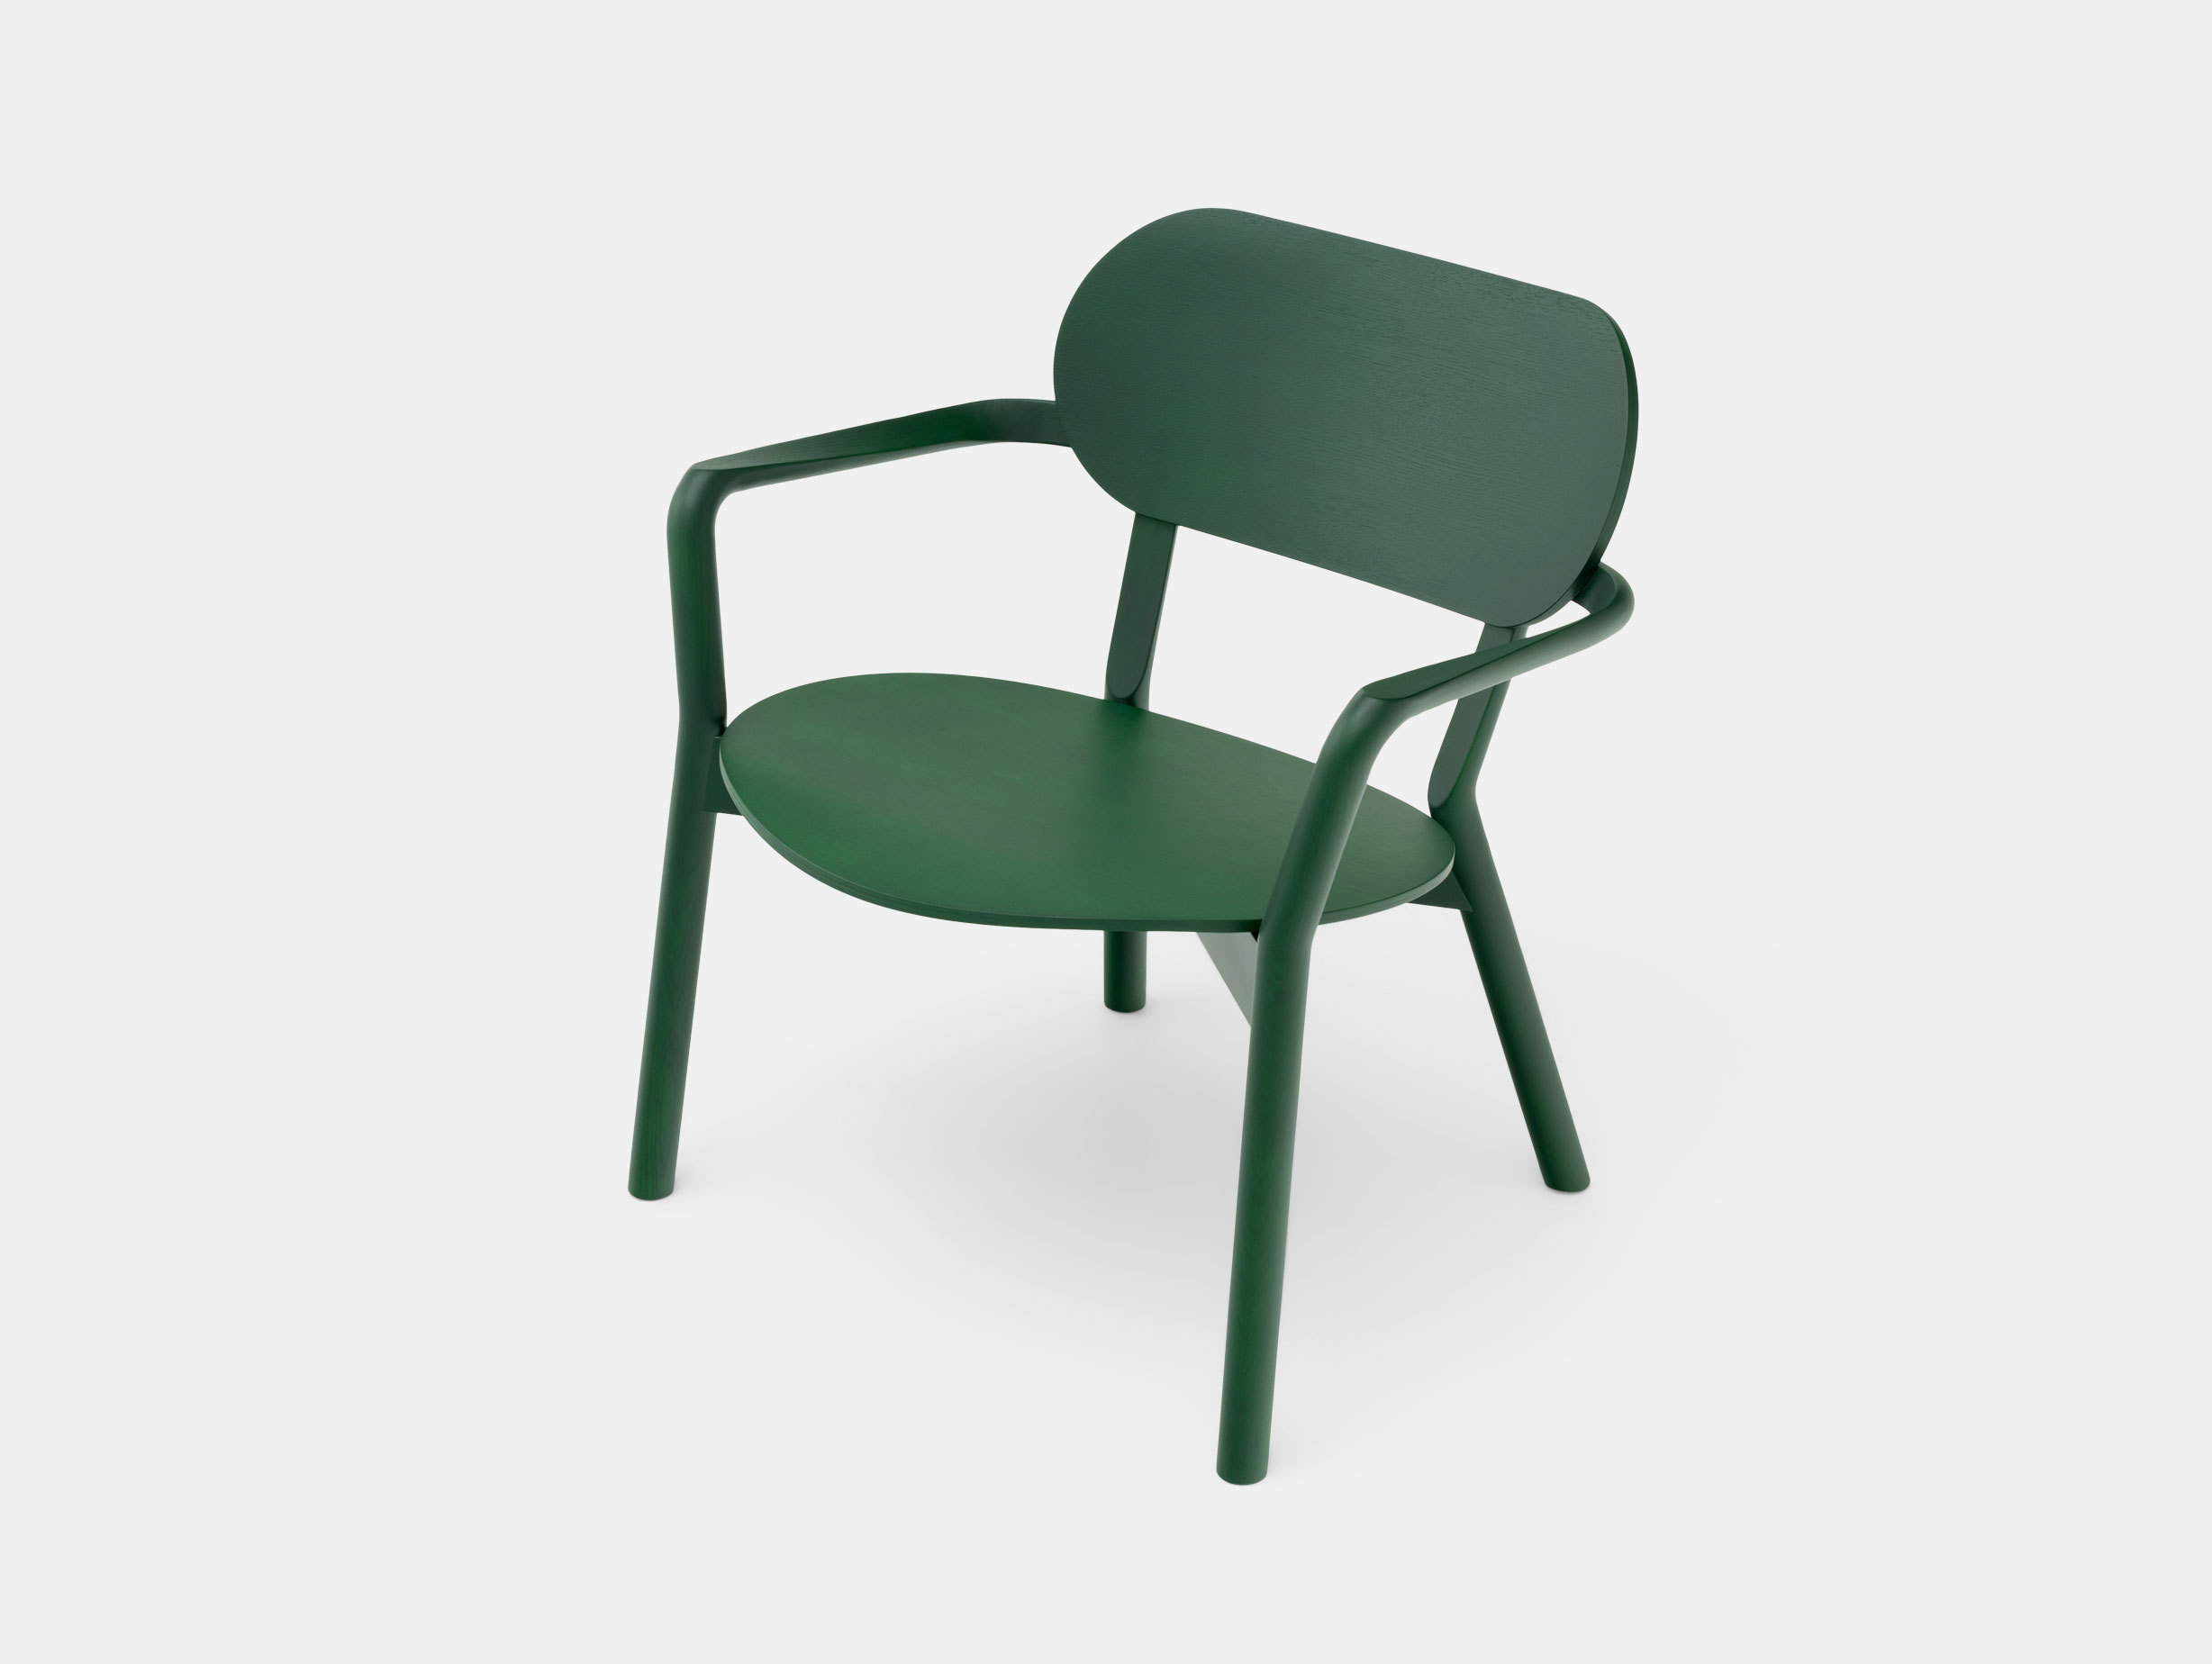 Castor Low Chair image 1